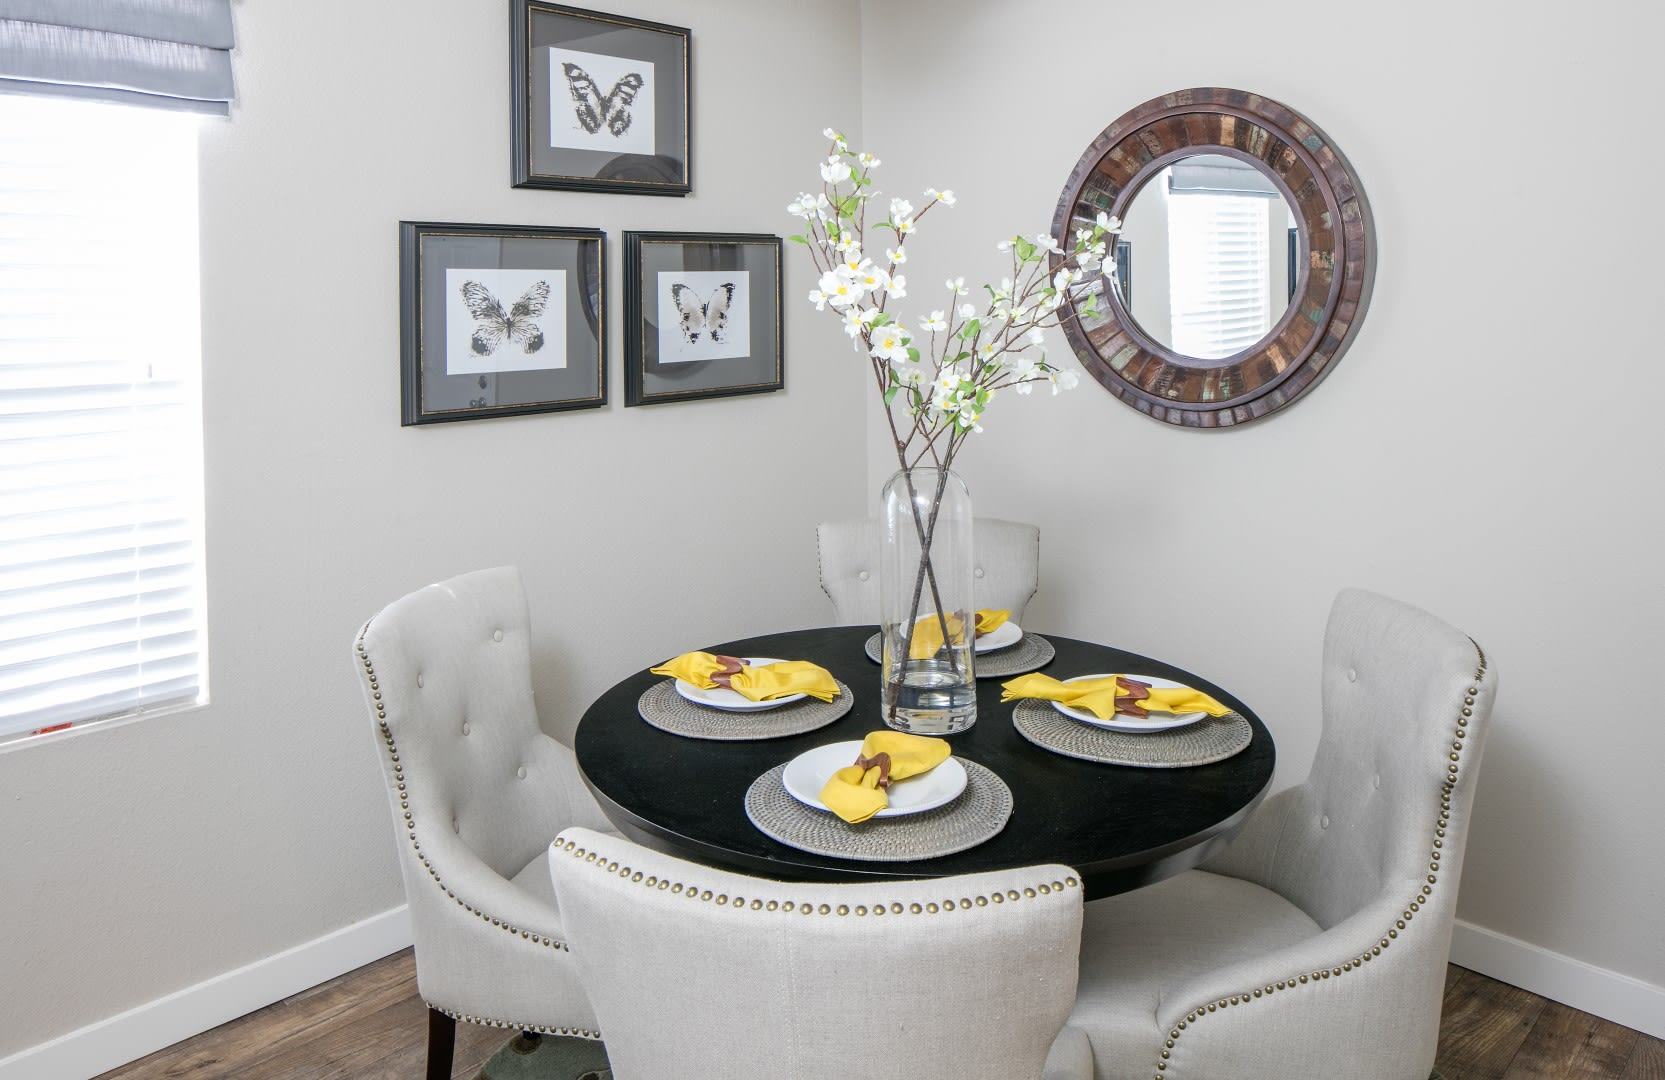 Two story apartment townhome at The Carriages at Fairwood Downs, Renton, WA